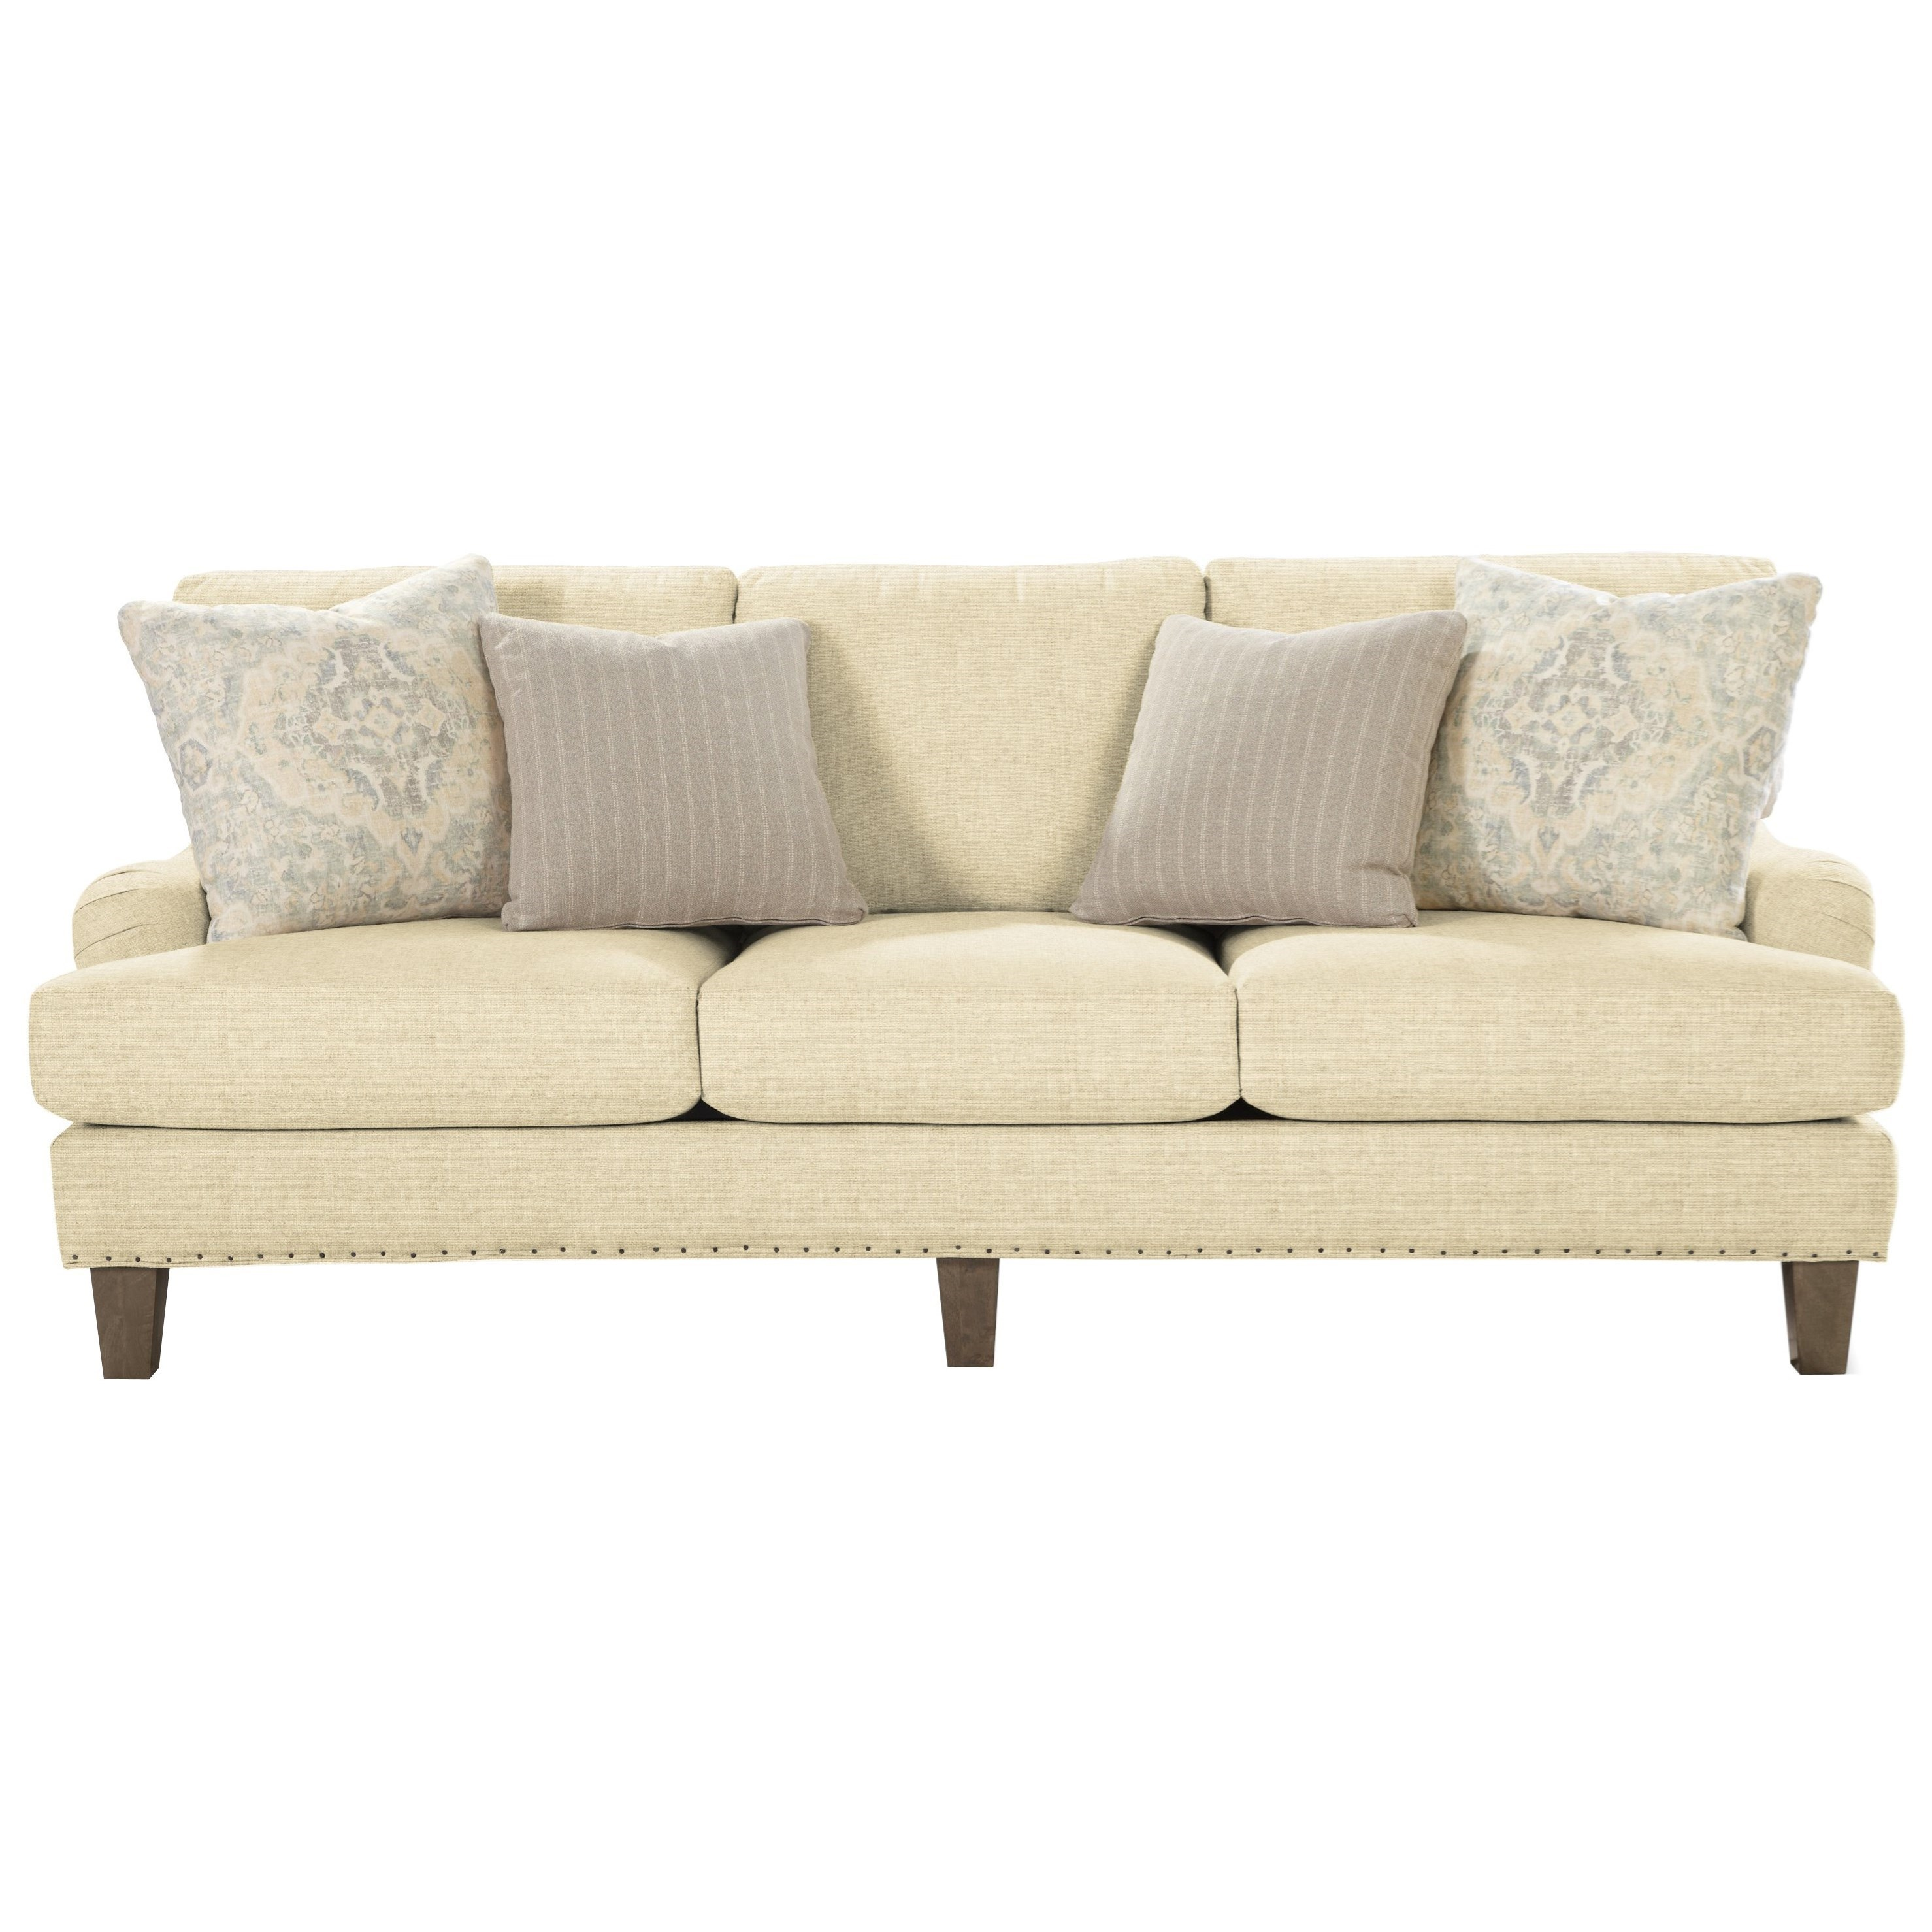 7429 Sofa by Hickory Craft at Godby Home Furnishings